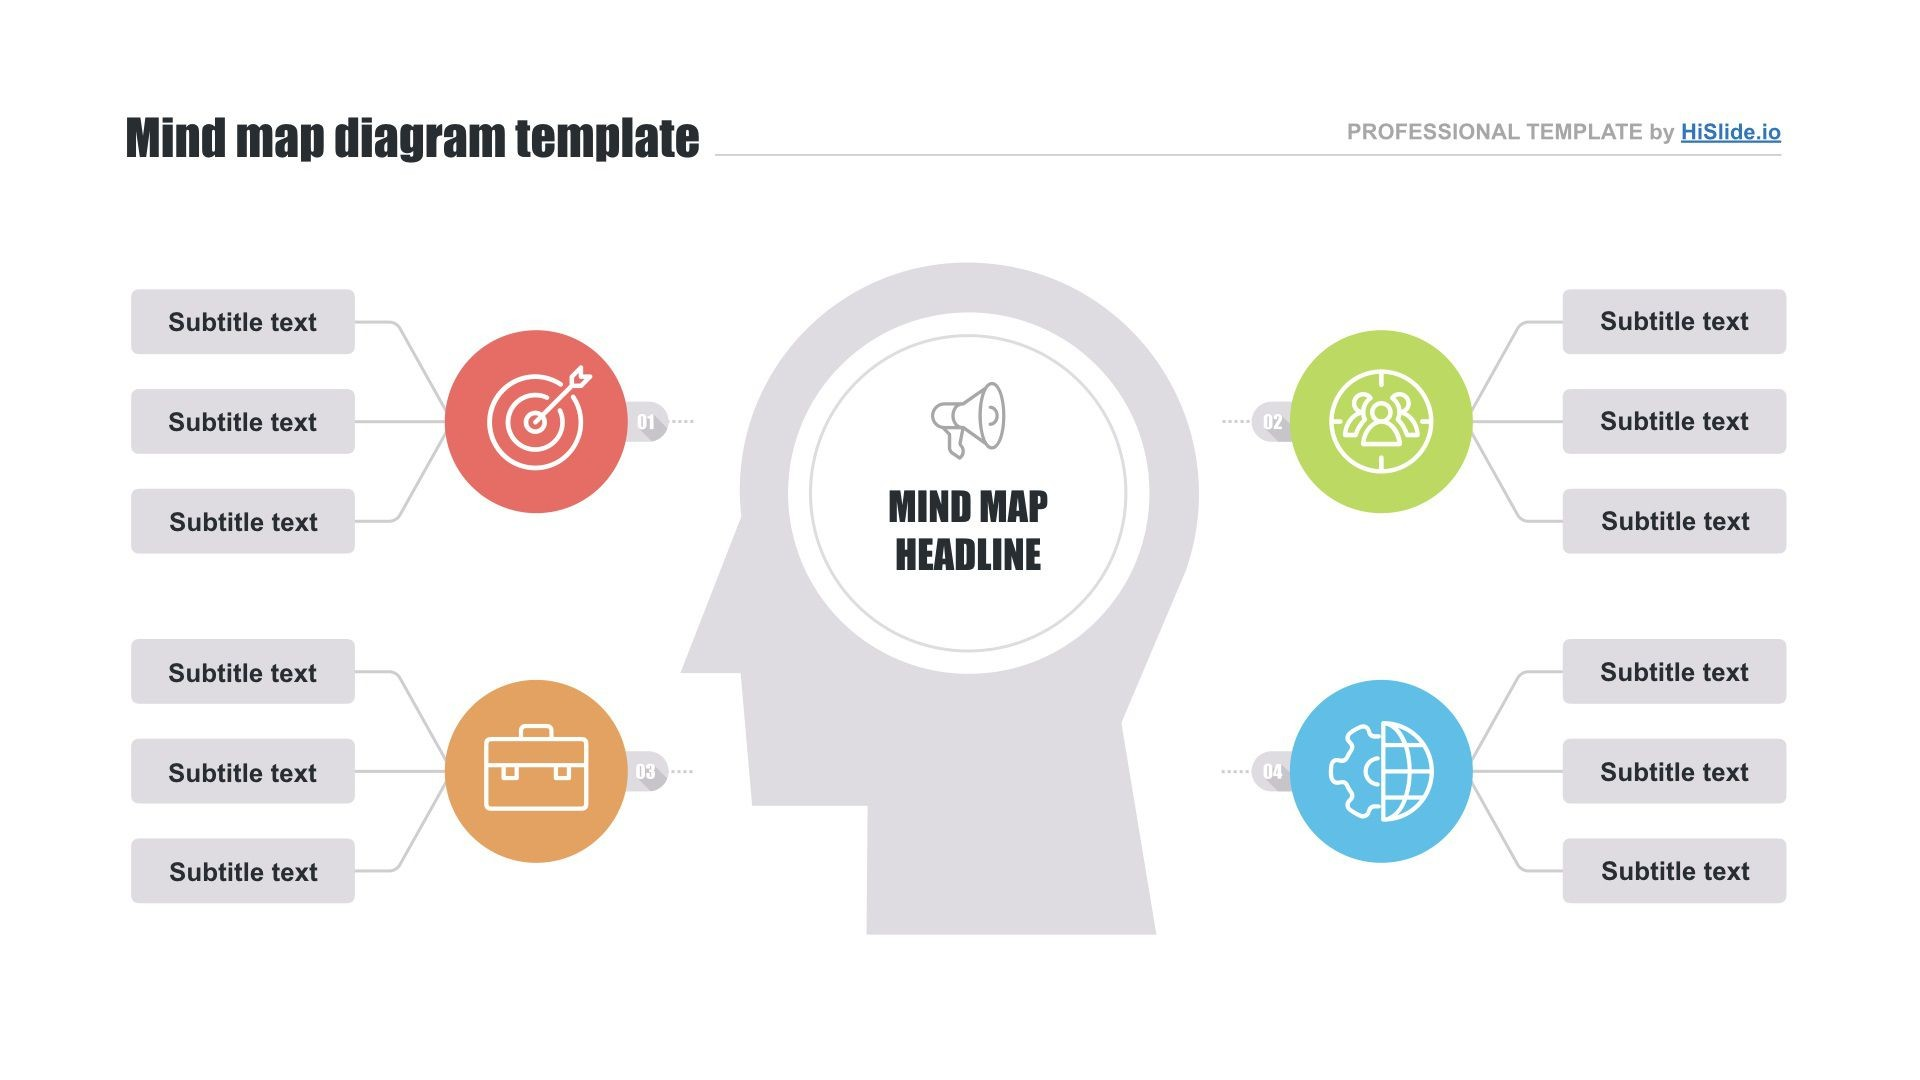 000 Astounding Free Editable Mind Map Template Image  Word Powerpoint1920